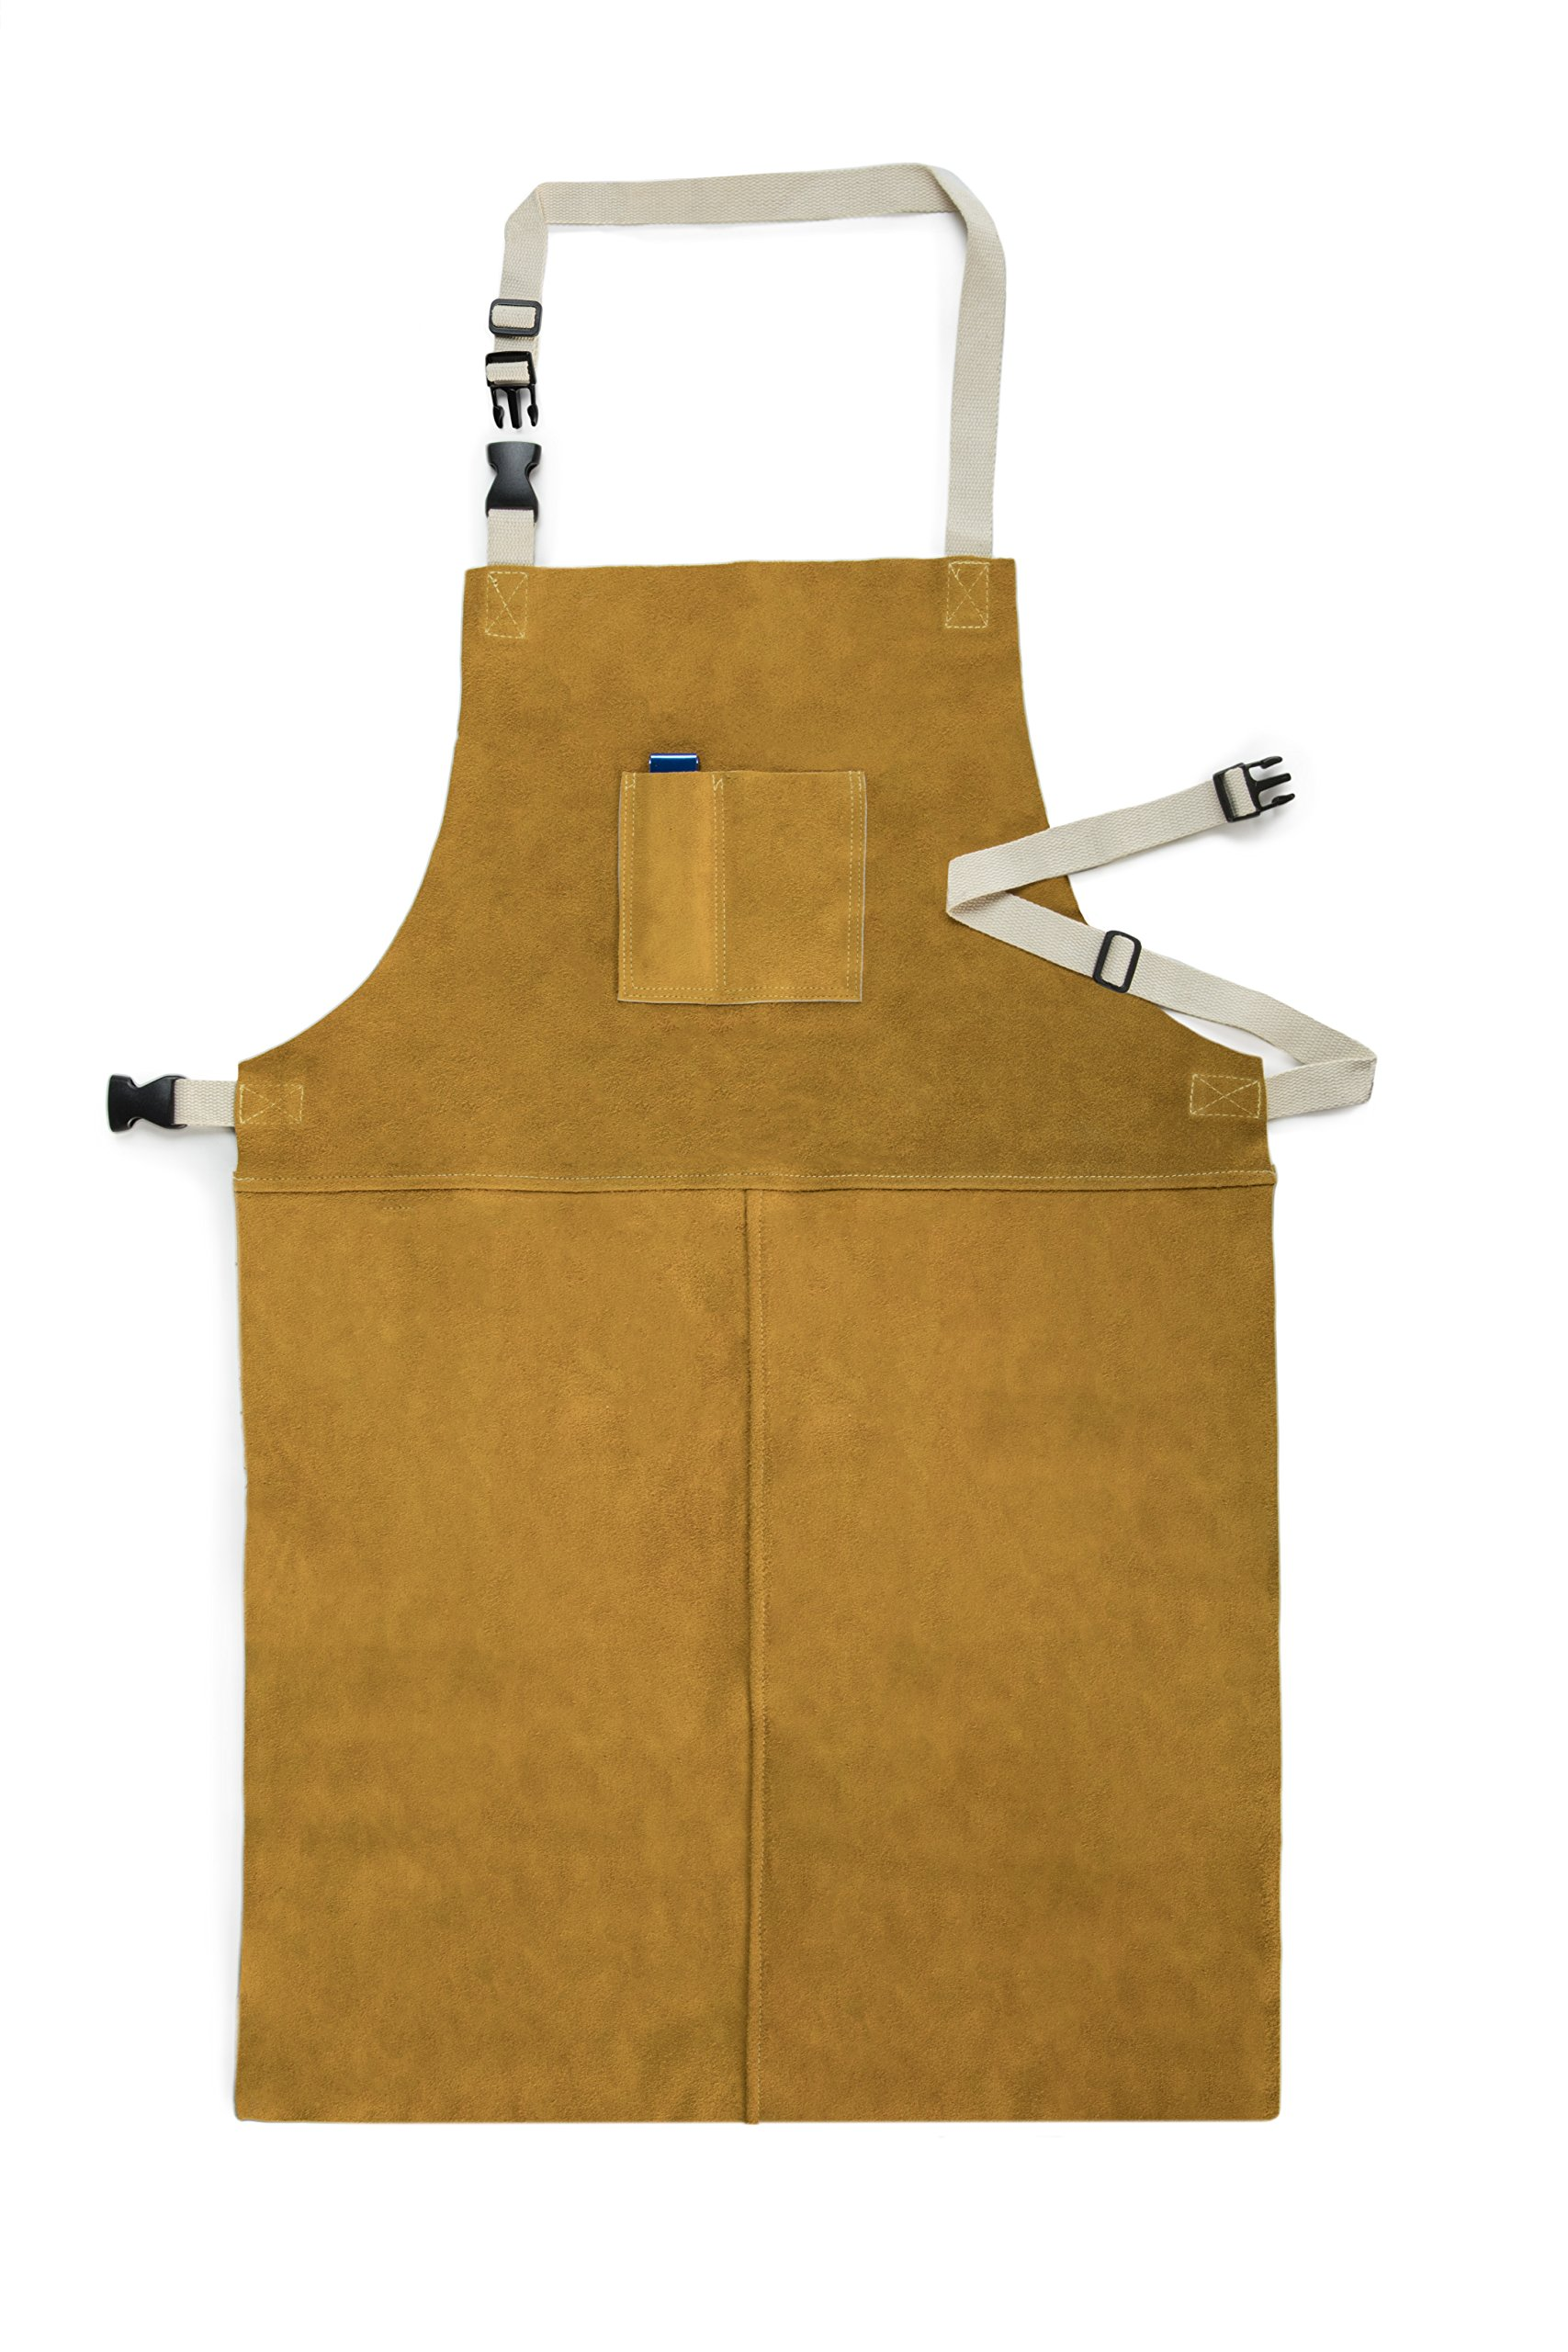 Fookay Leather Welding Apron heat resistant 24 inch by 36 inch with Adjustable Neck and Waist Straps Tan One Size Includes Welding Tip Cleaner